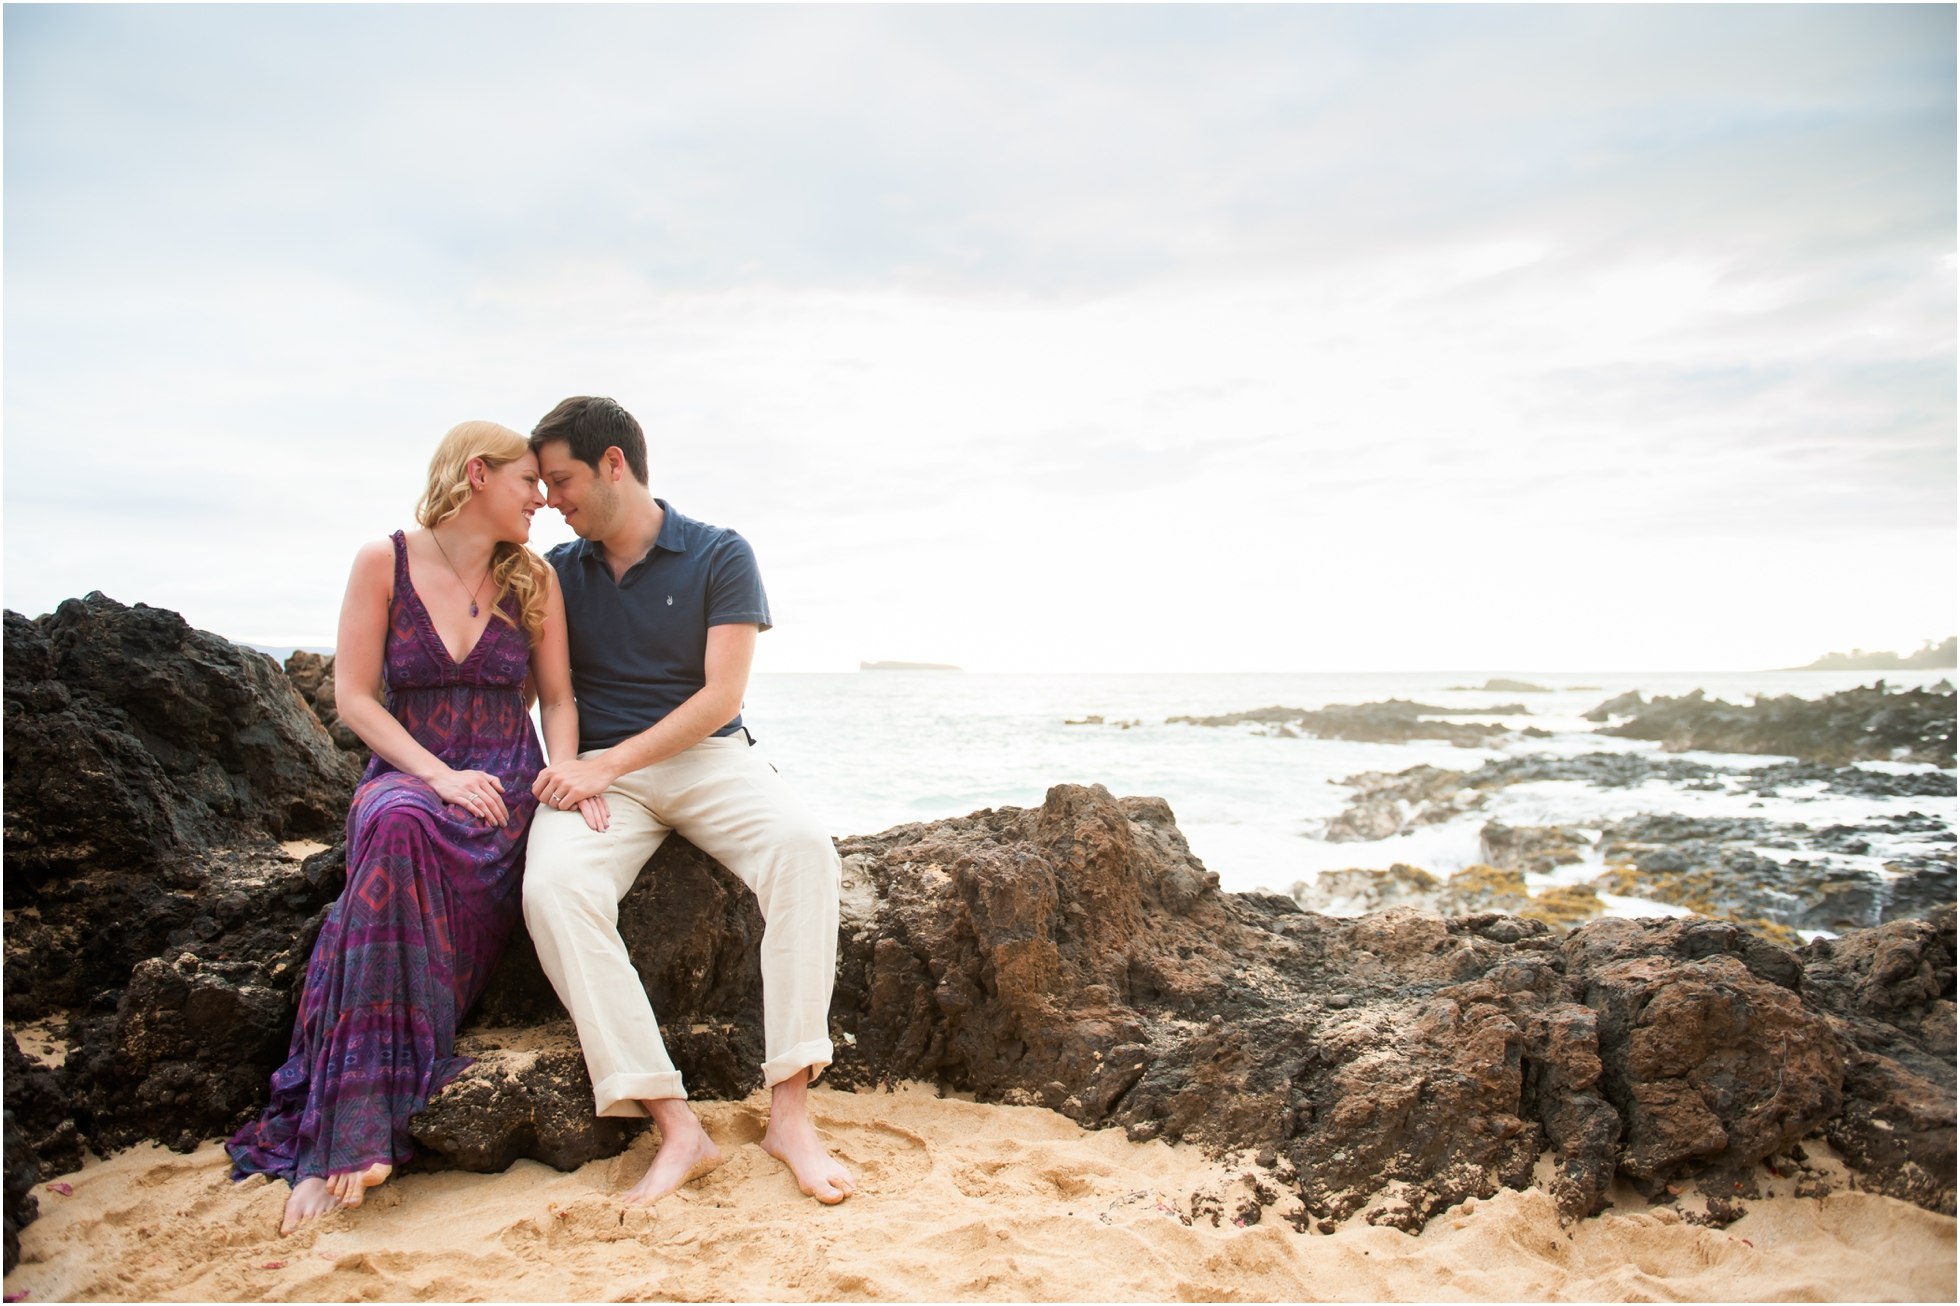 Christina + Jeff's Honeymoon Portraits at Makena Cove